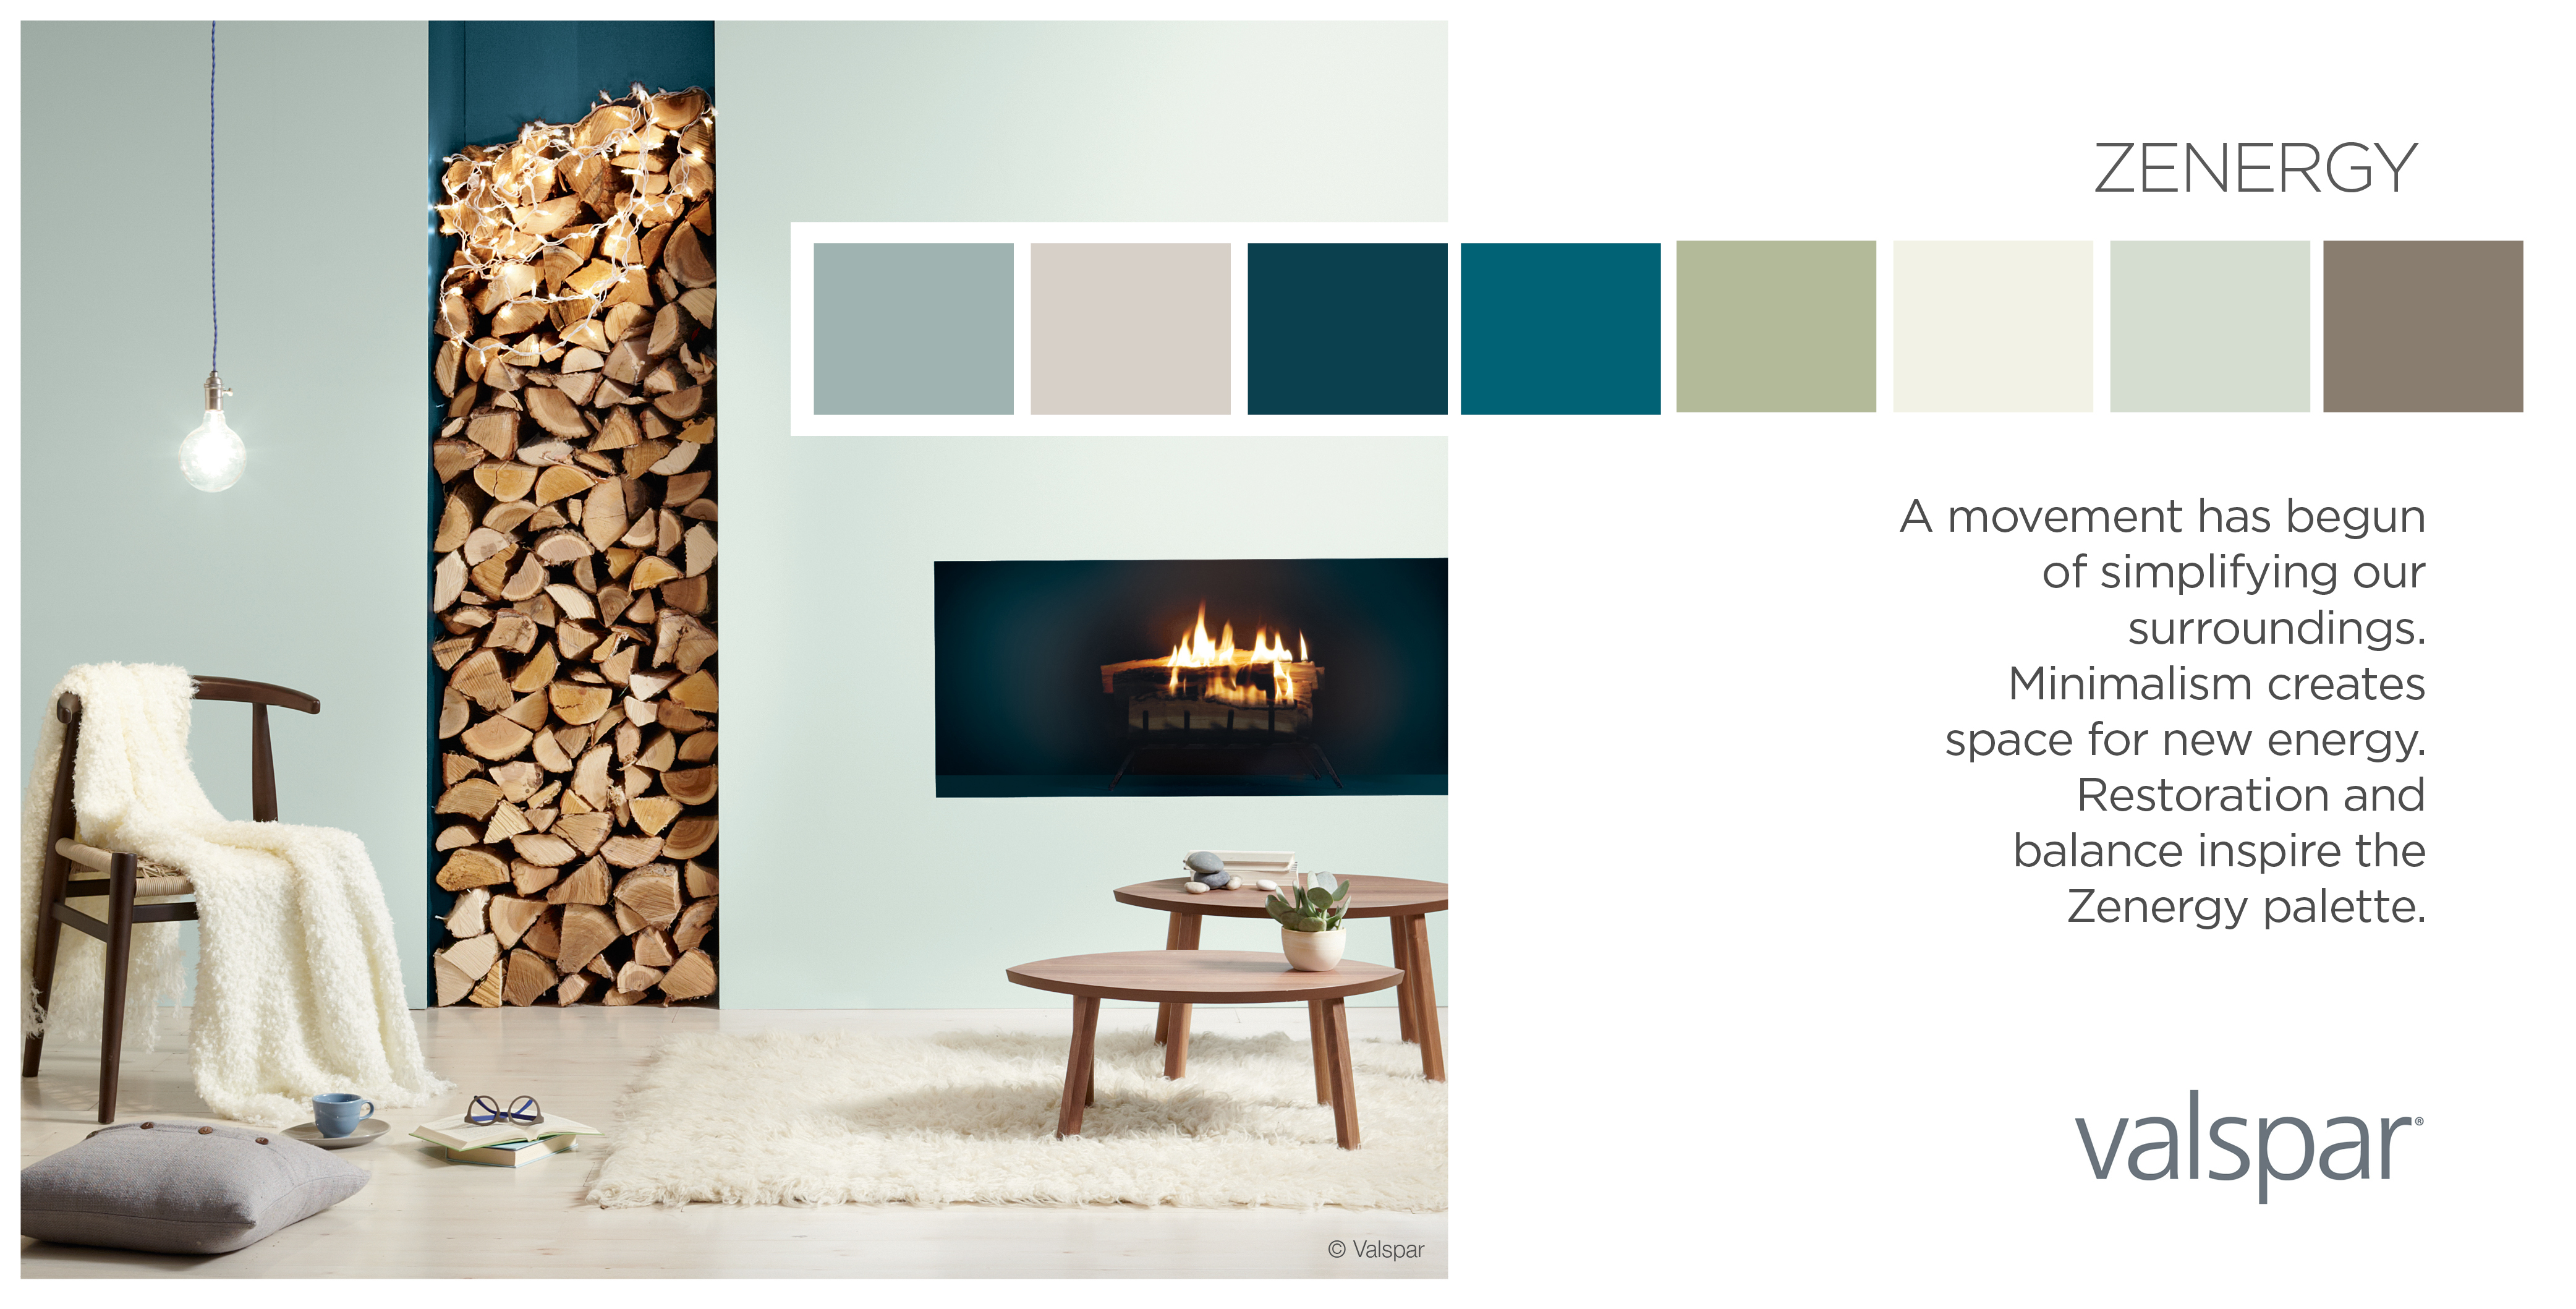 valspar paint unveils 2014 color outlook business wire on valspar paint id=48871